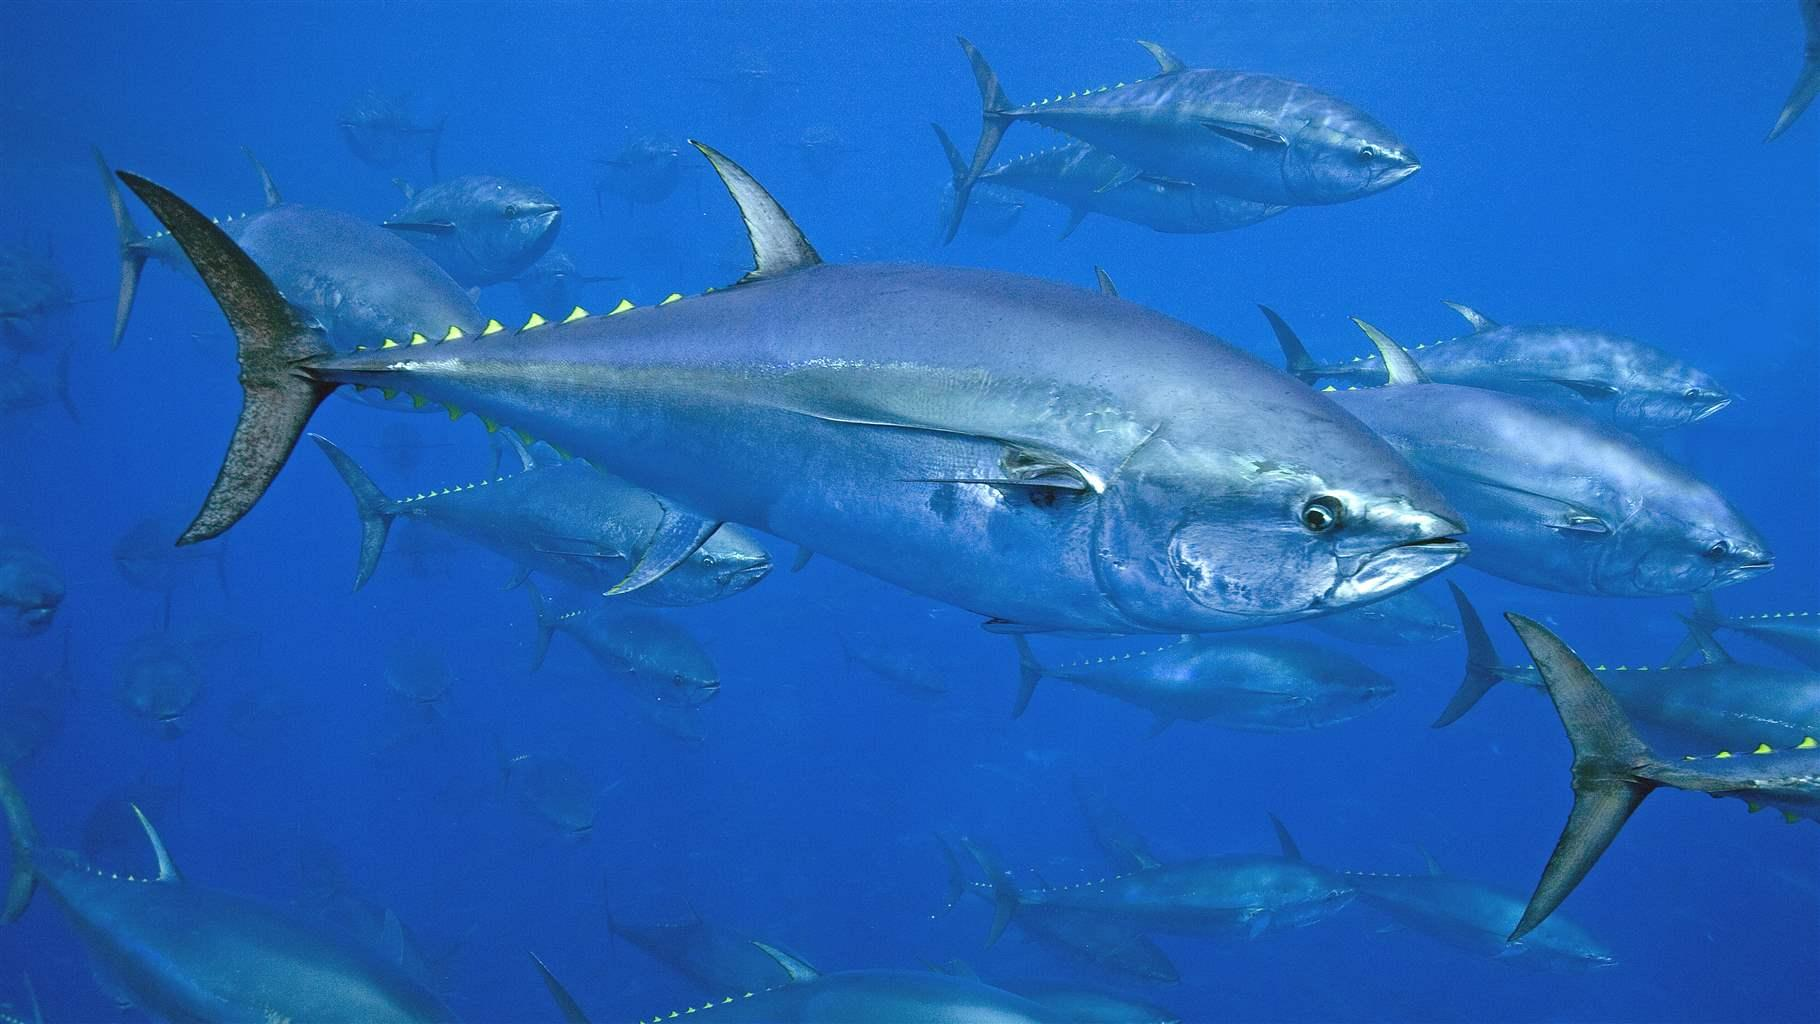 hight resolution of huge fishing bust exposes weaknesses in bluefin tuna management